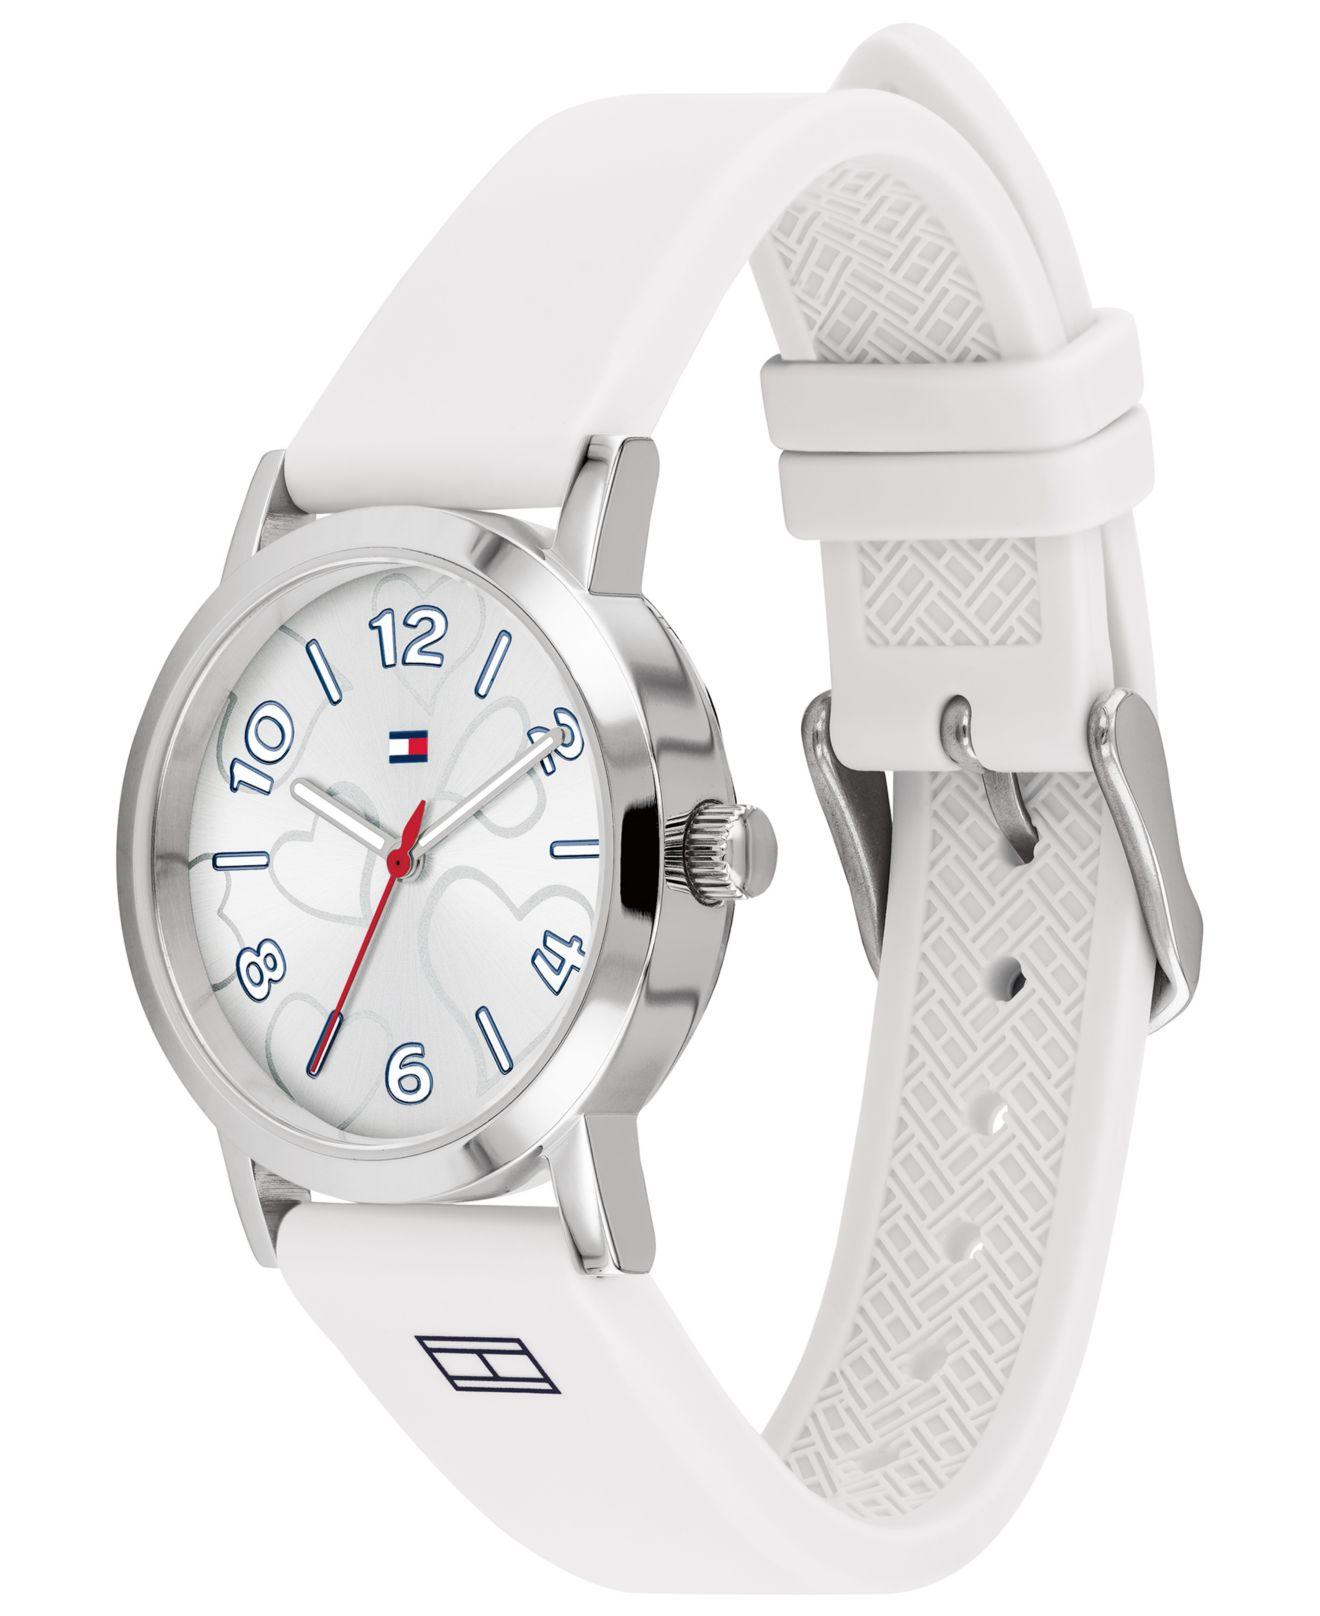 6246a0cbc Tommy Hilfiger - White Silicone Strap Watch 32mm Created For Macy's - Lyst.  View fullscreen